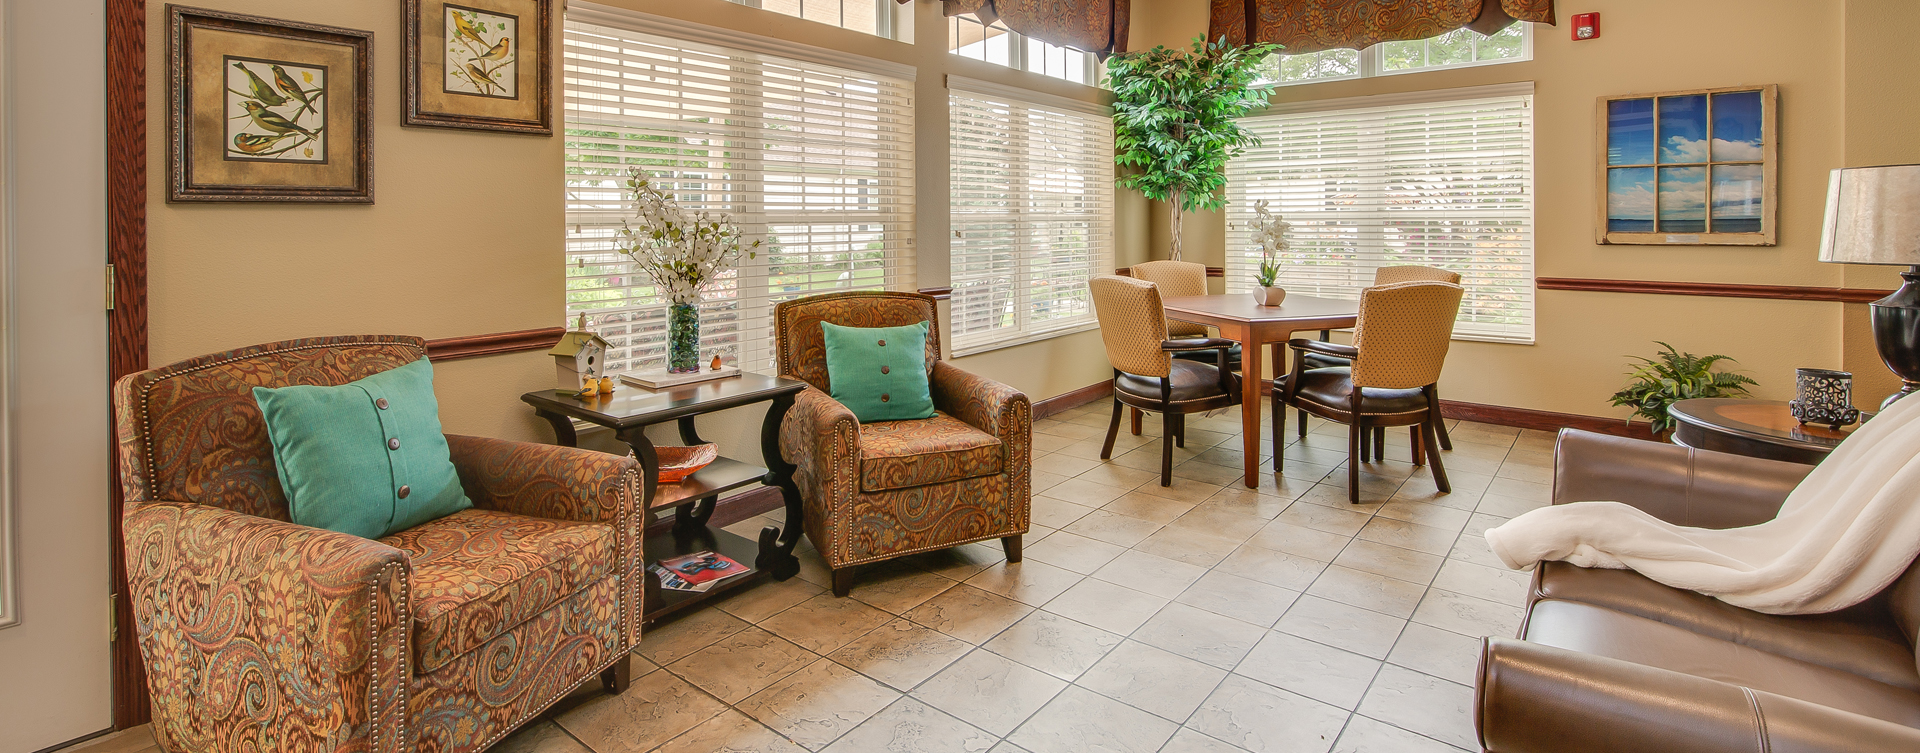 Enjoy the view of the outdoors from the sunroom at Bickford of Portage